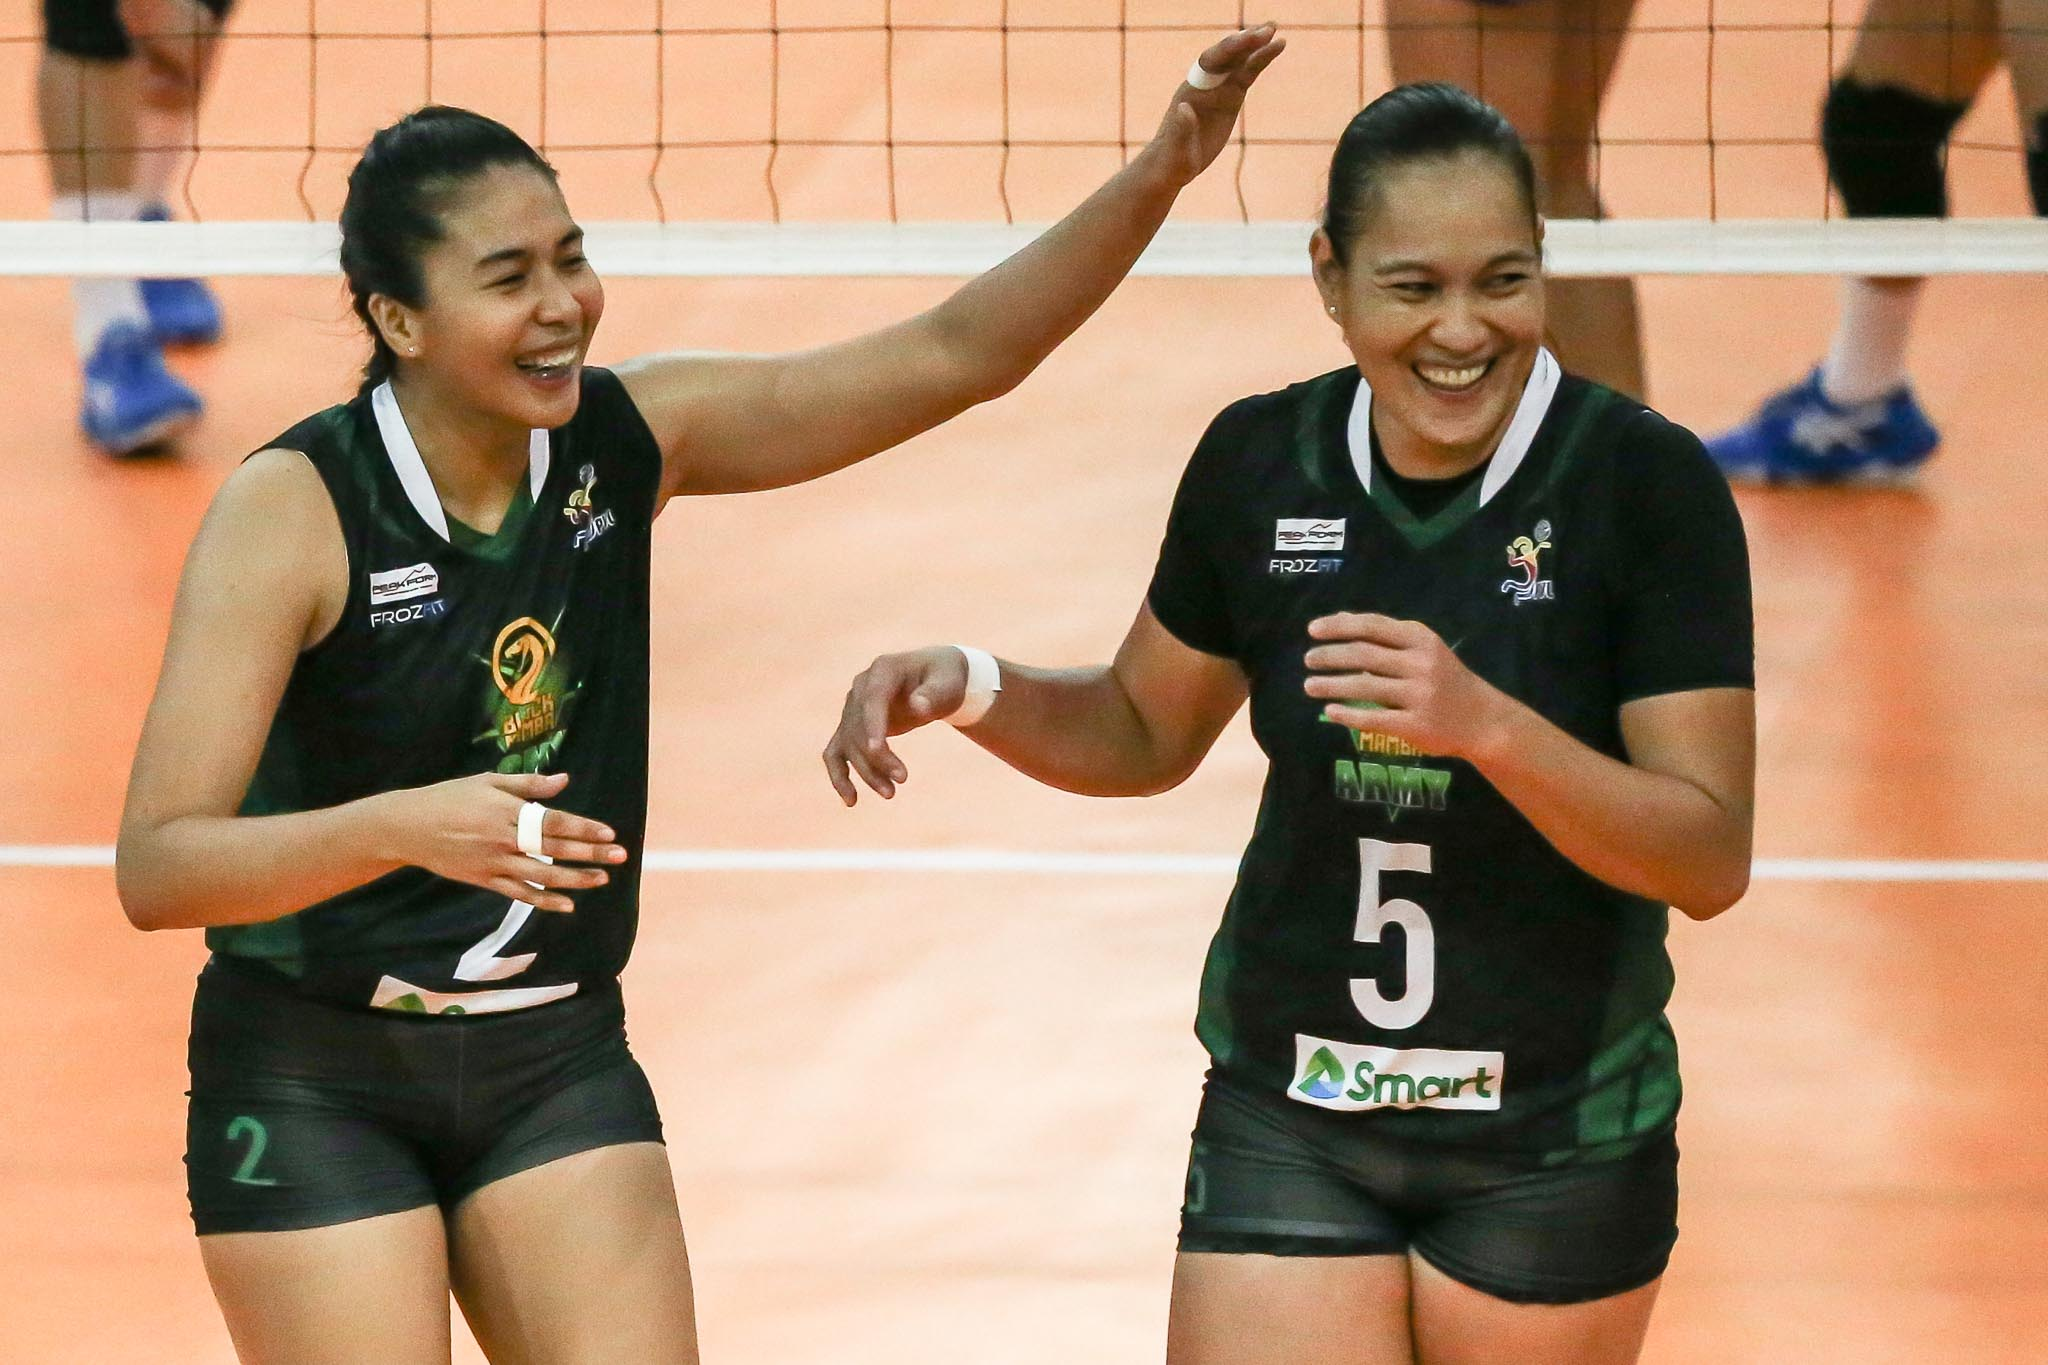 2021-PVL-Open-Black-Mamba-Army-vs-BaliPure-Mean-Esguerra-x-Ging-Balse-Pabayo Balse-Pabayo had thoughts of retiring last year News PVL Volleyball  - philippine sports news